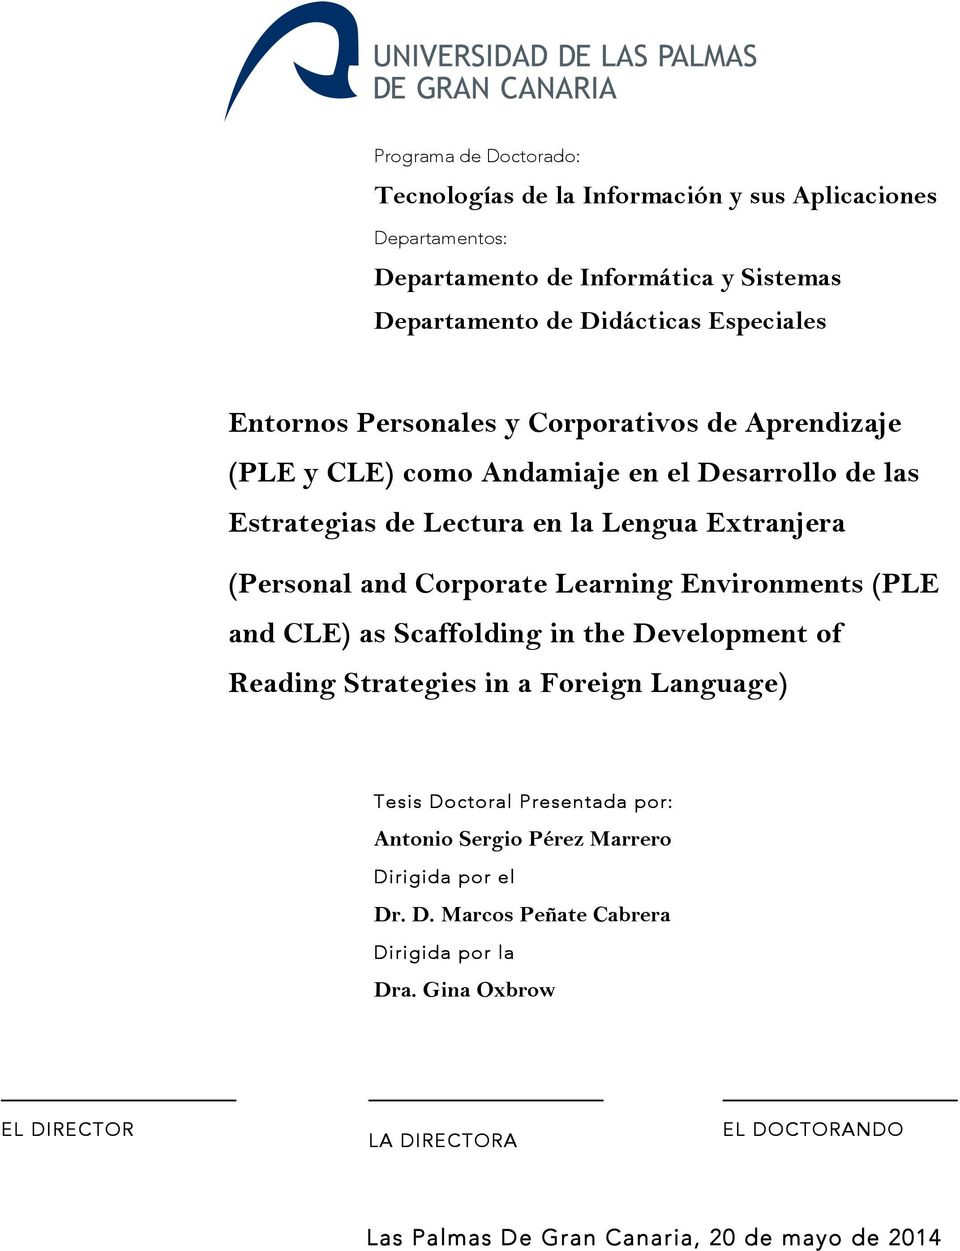 Corporate Learning Environments (PLE and CLE) as Scaffolding in the Development of Reading Strategies in a Foreign Language) Tesis Doctoral Presentada por: Antonio